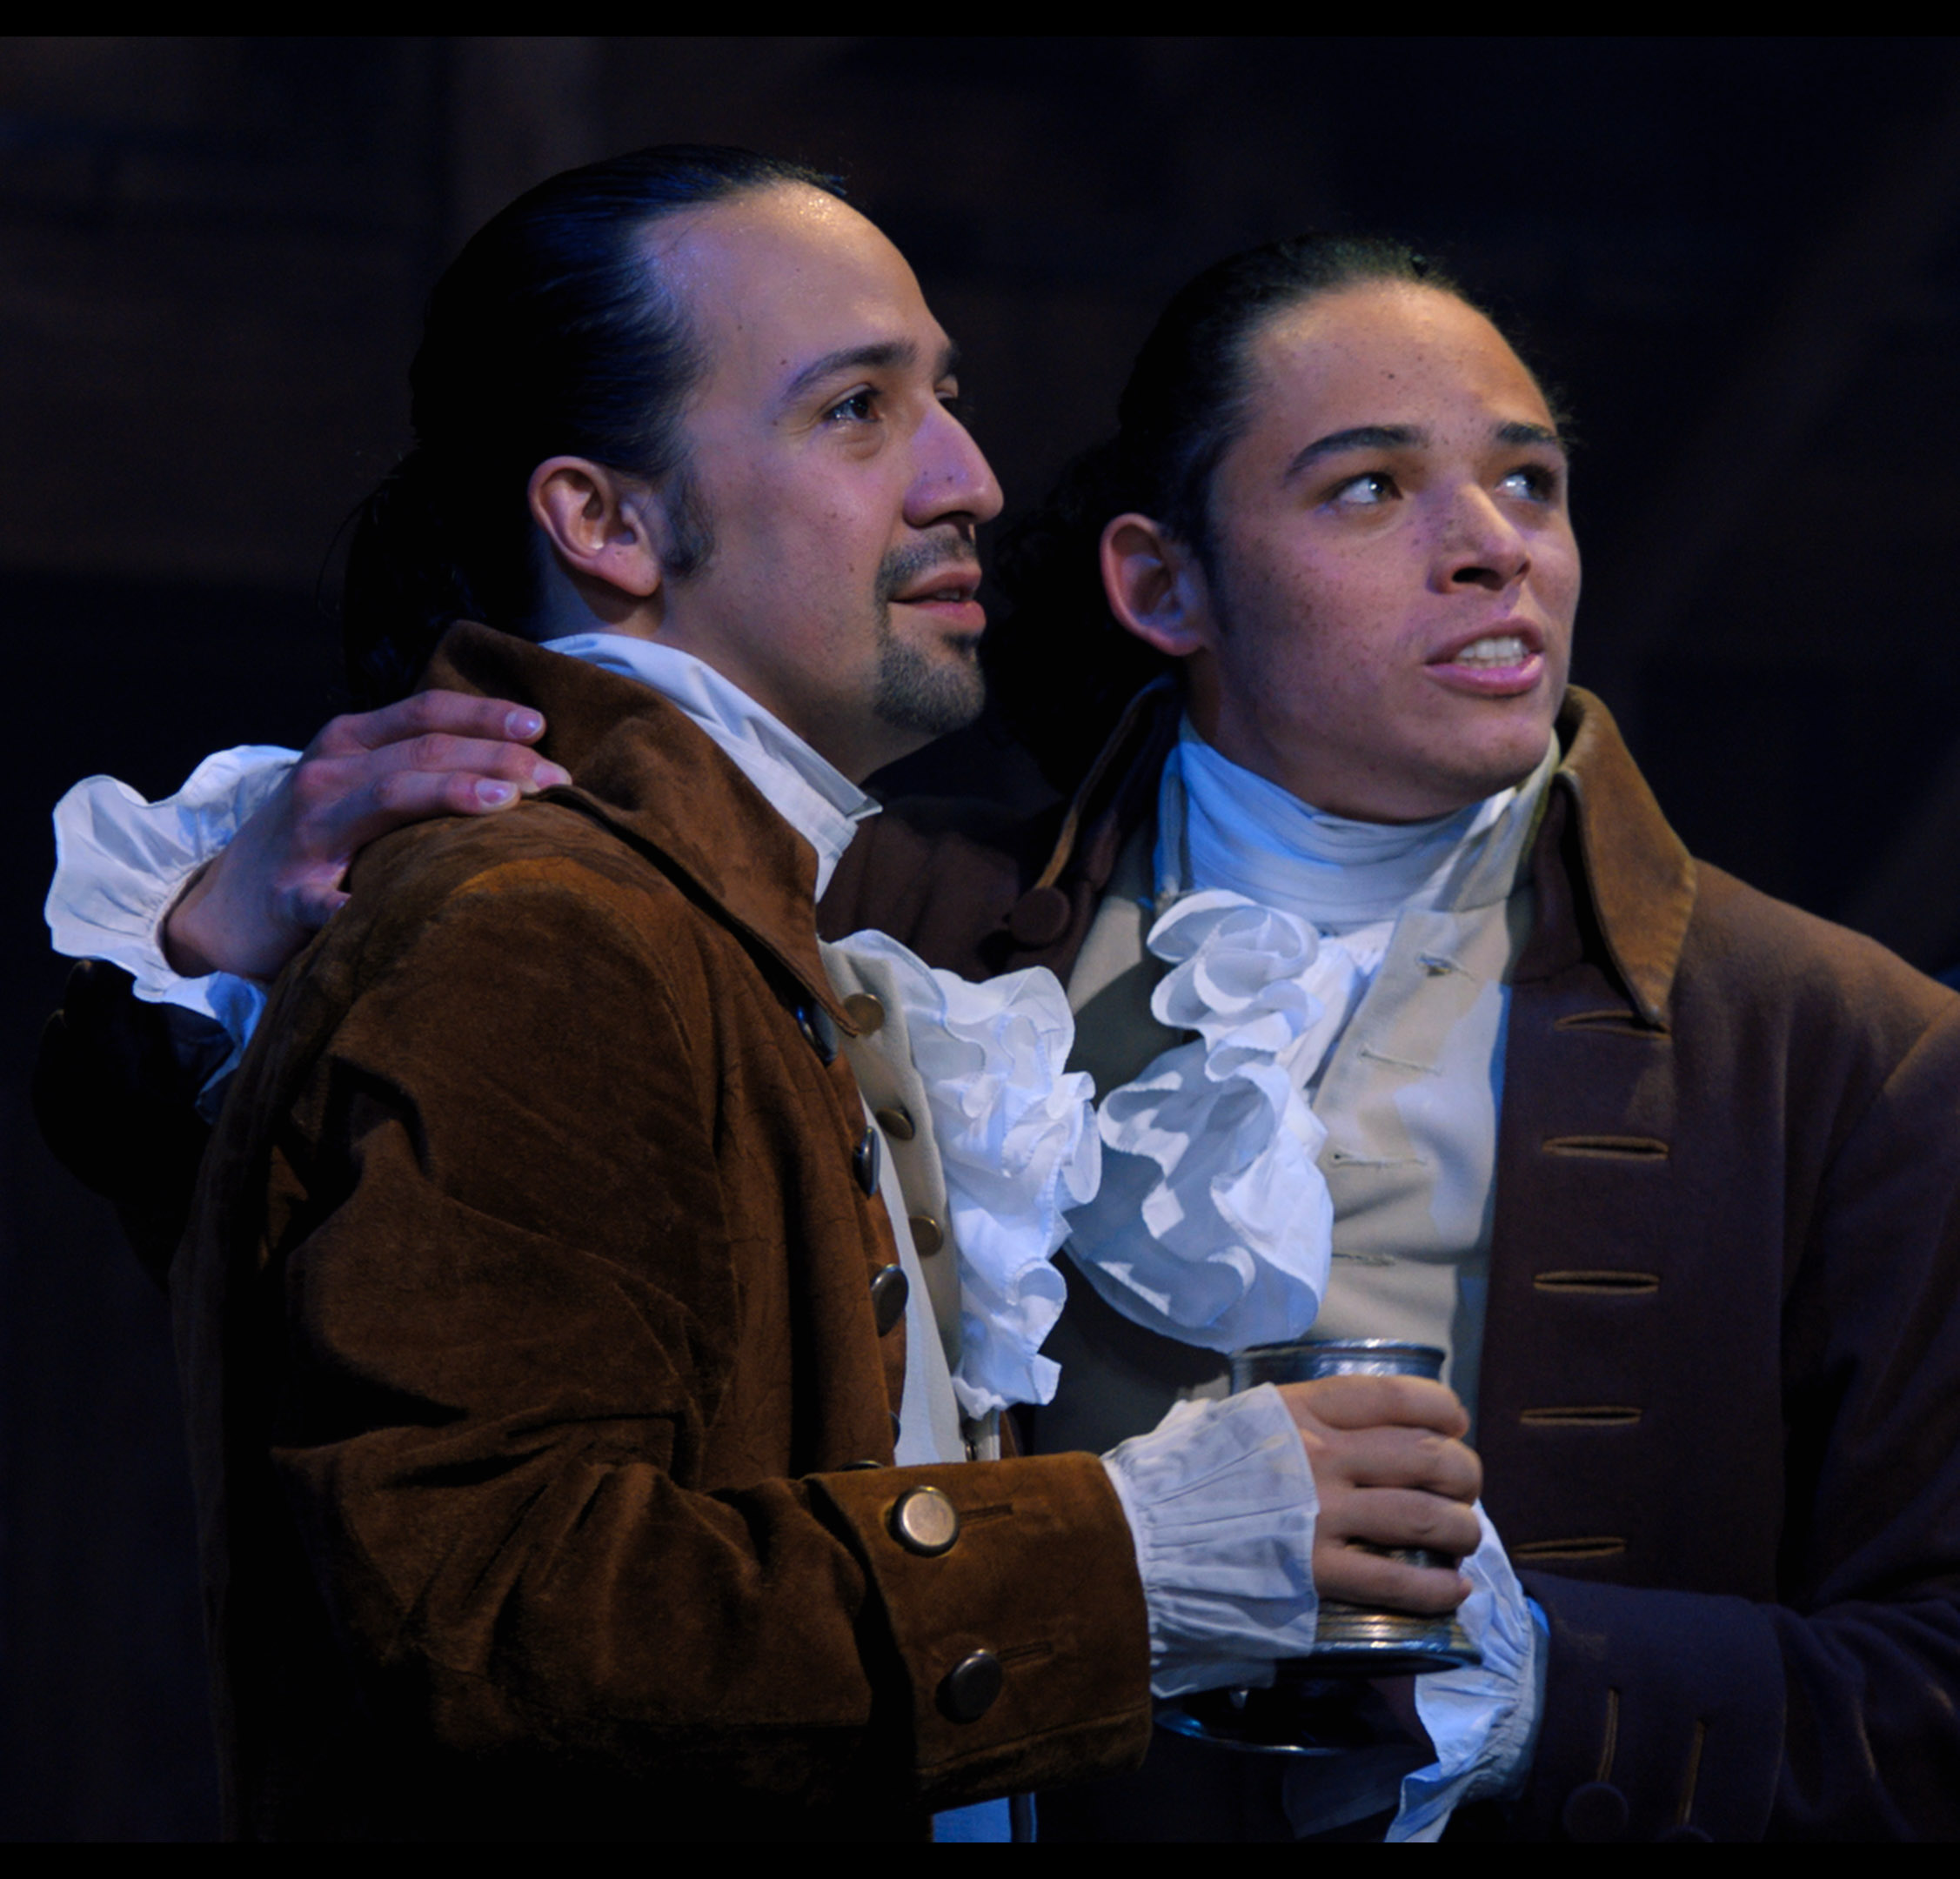 ART OF THE CUT with the editor of Hamilton 9